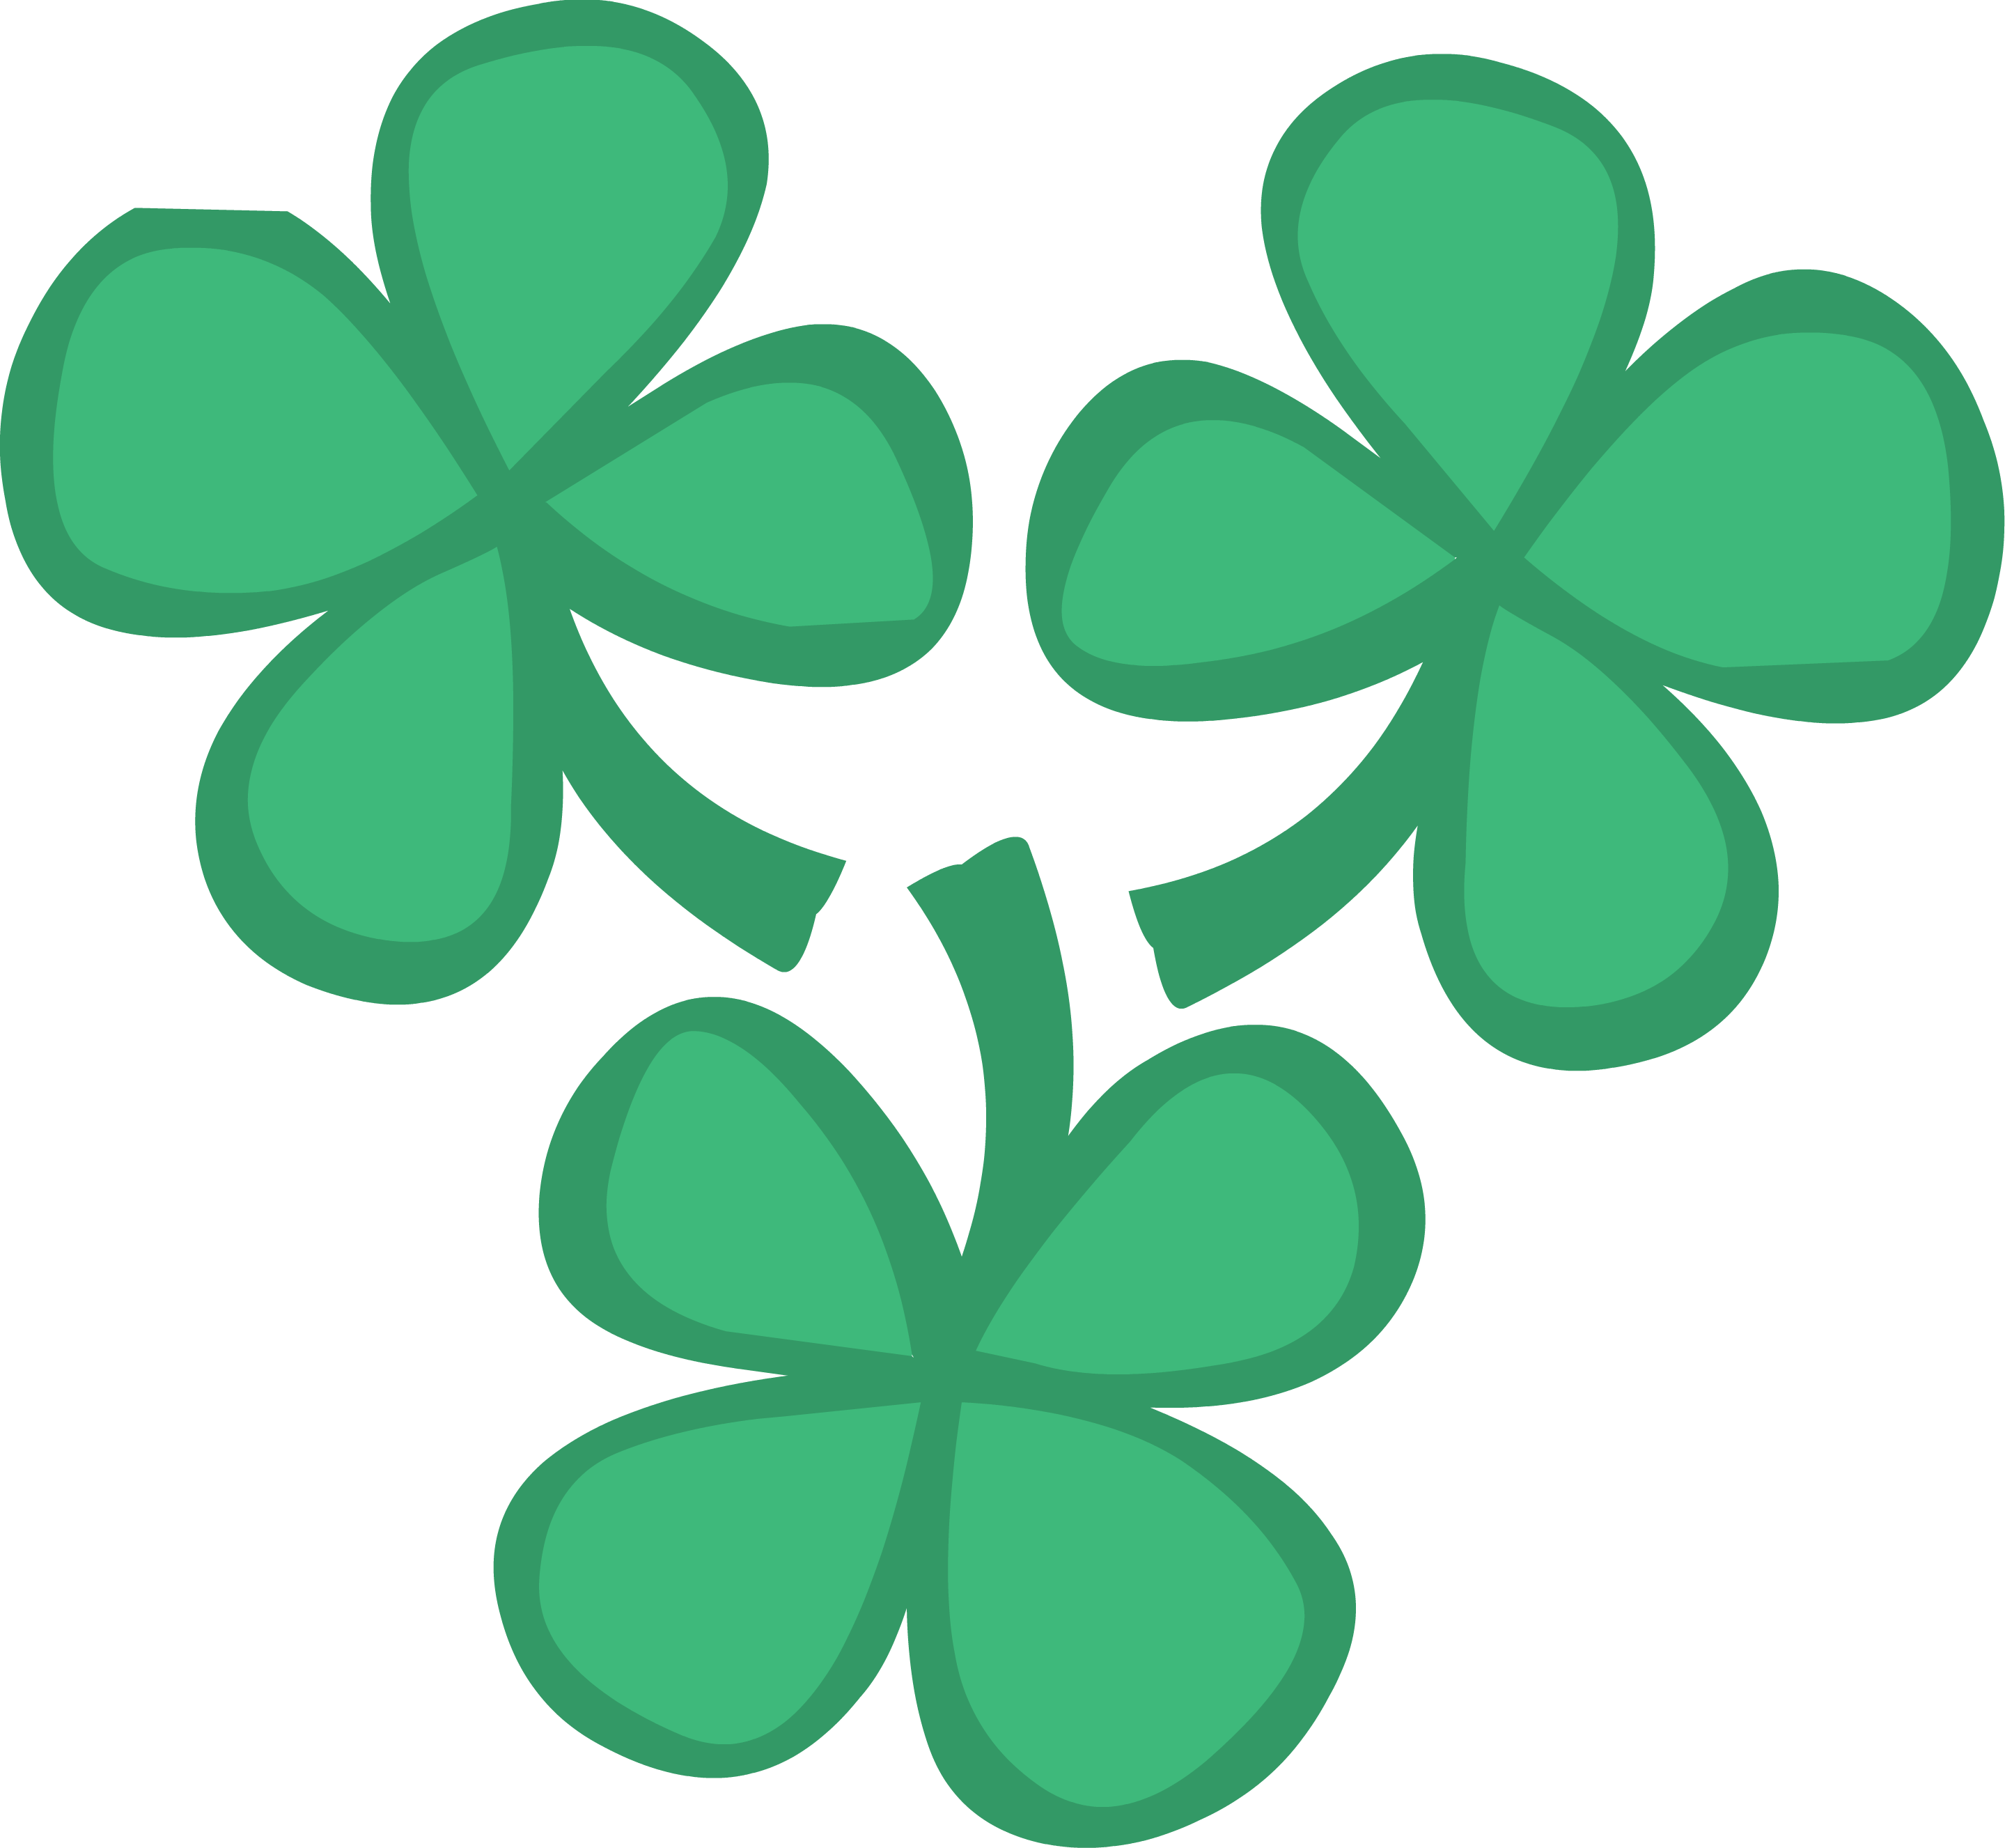 Lucky my little pony. Transparent clover png download